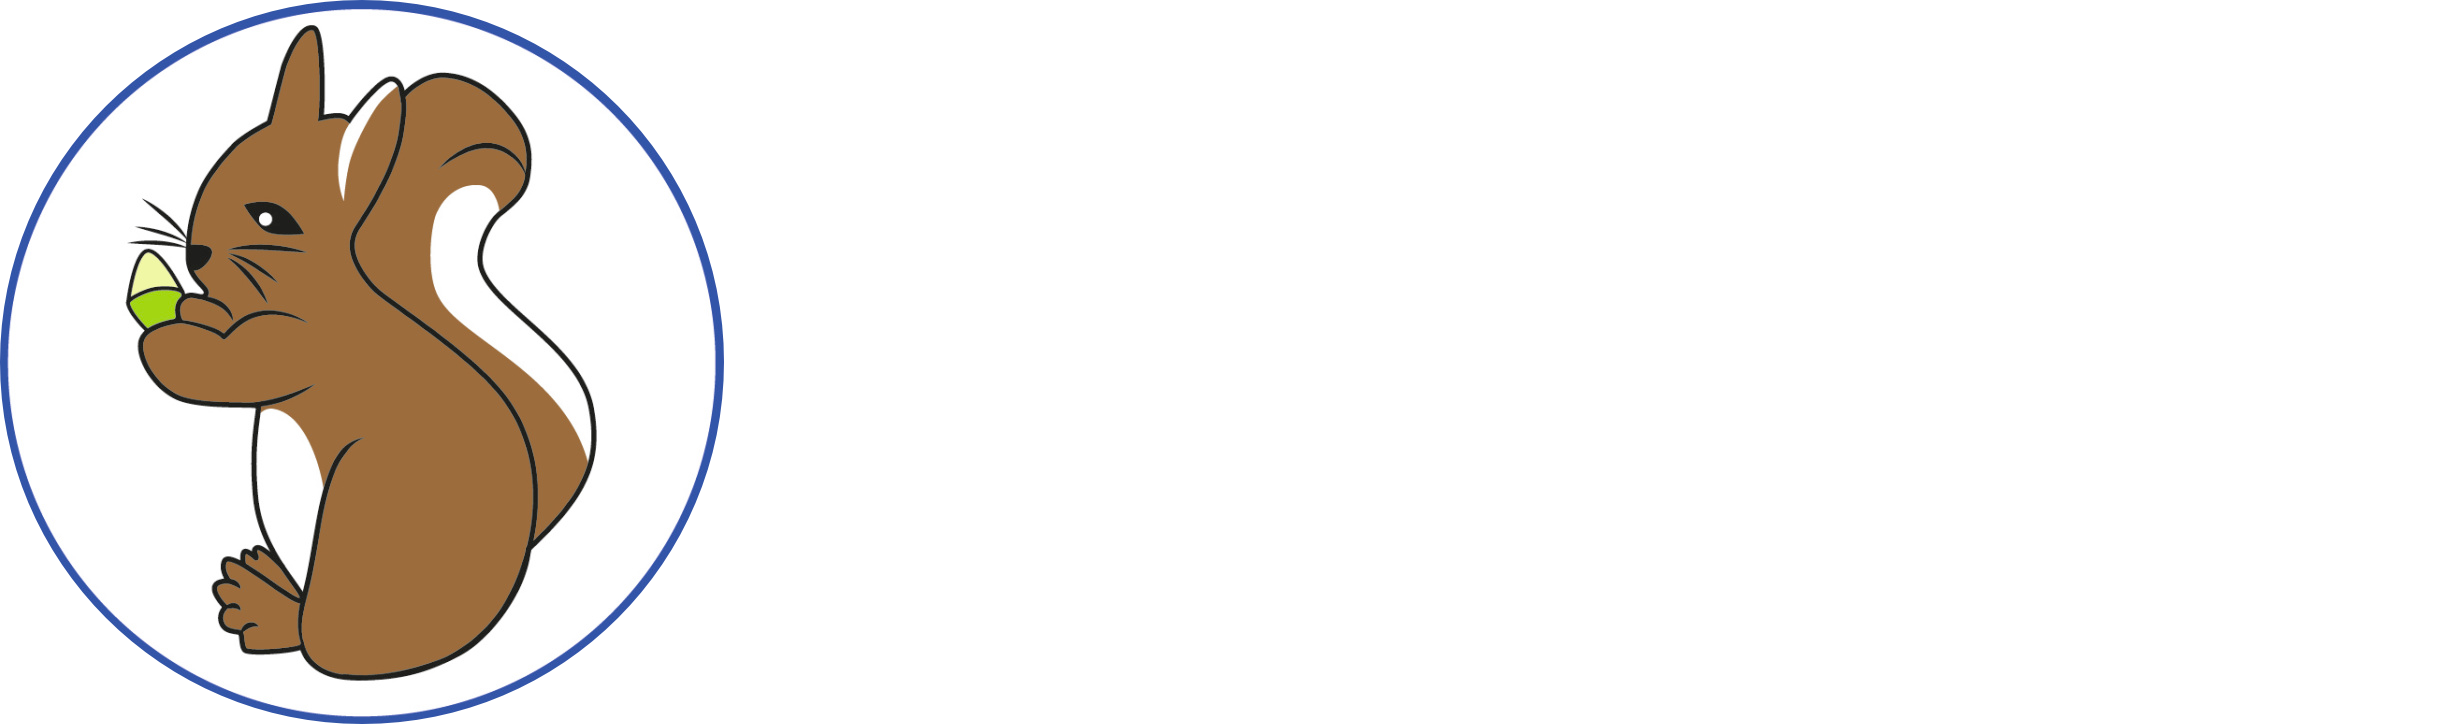 Curdworth Primary School homepage